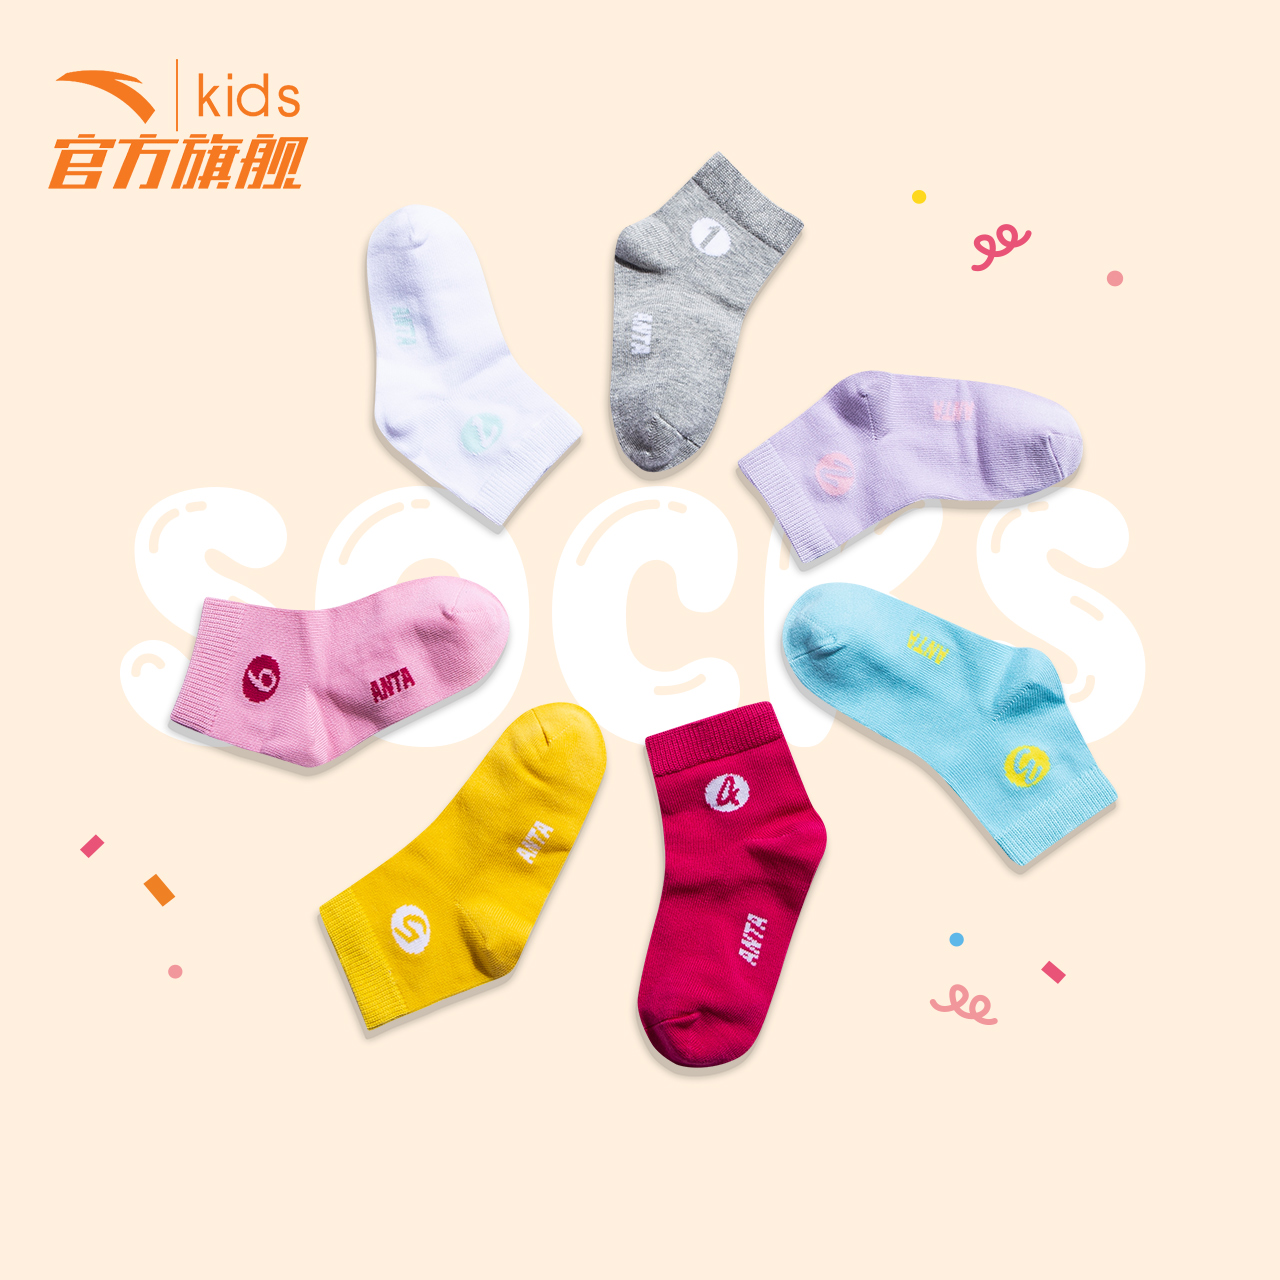 Anta children's socks 7 pairs of middle and large children's socks boys' socks sports socks boys' socks girls' socks comfort socks